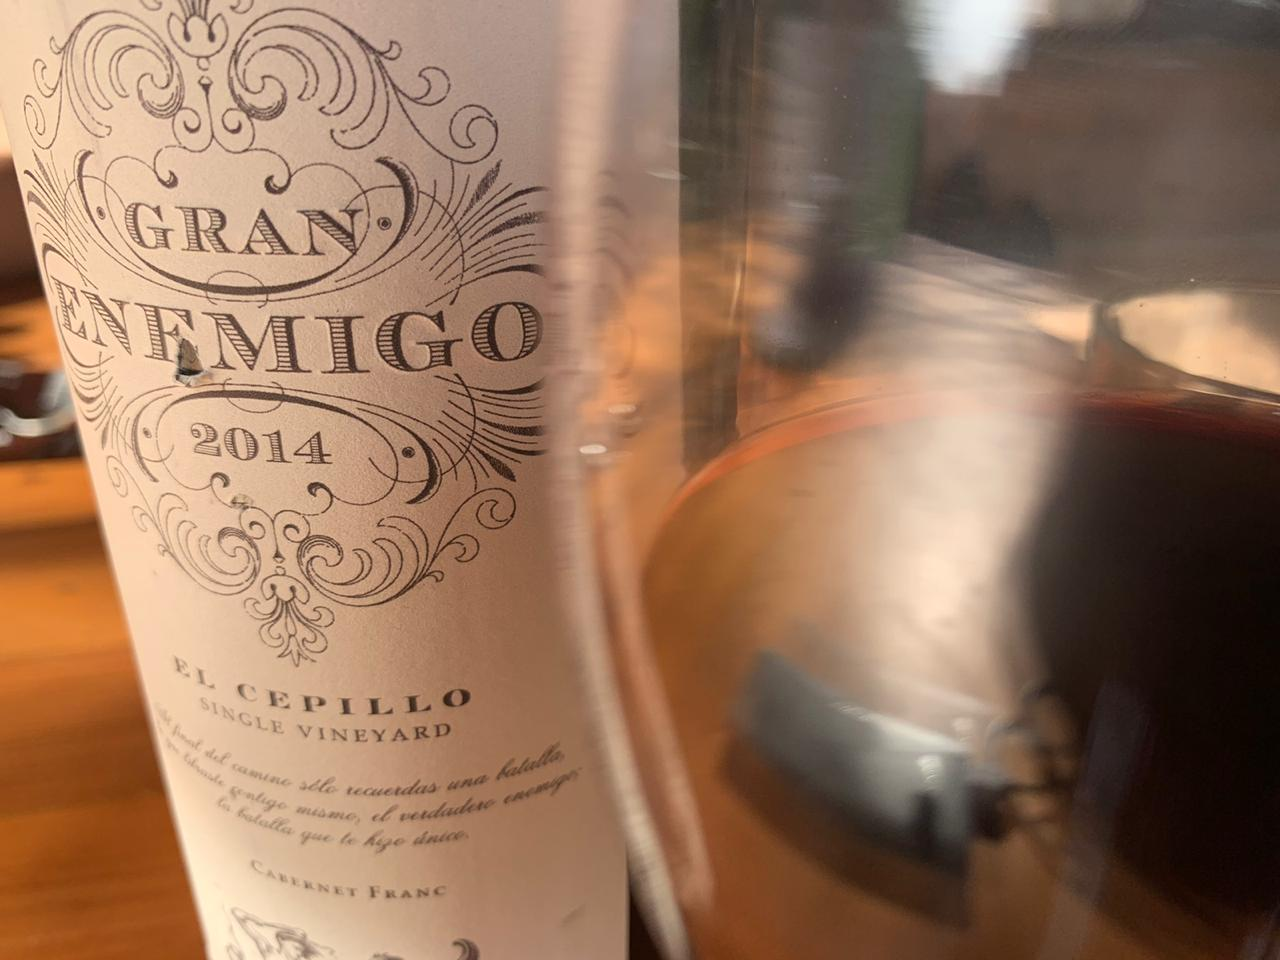 gran enemigo single vineyard el cepillo cabernet franc 2014